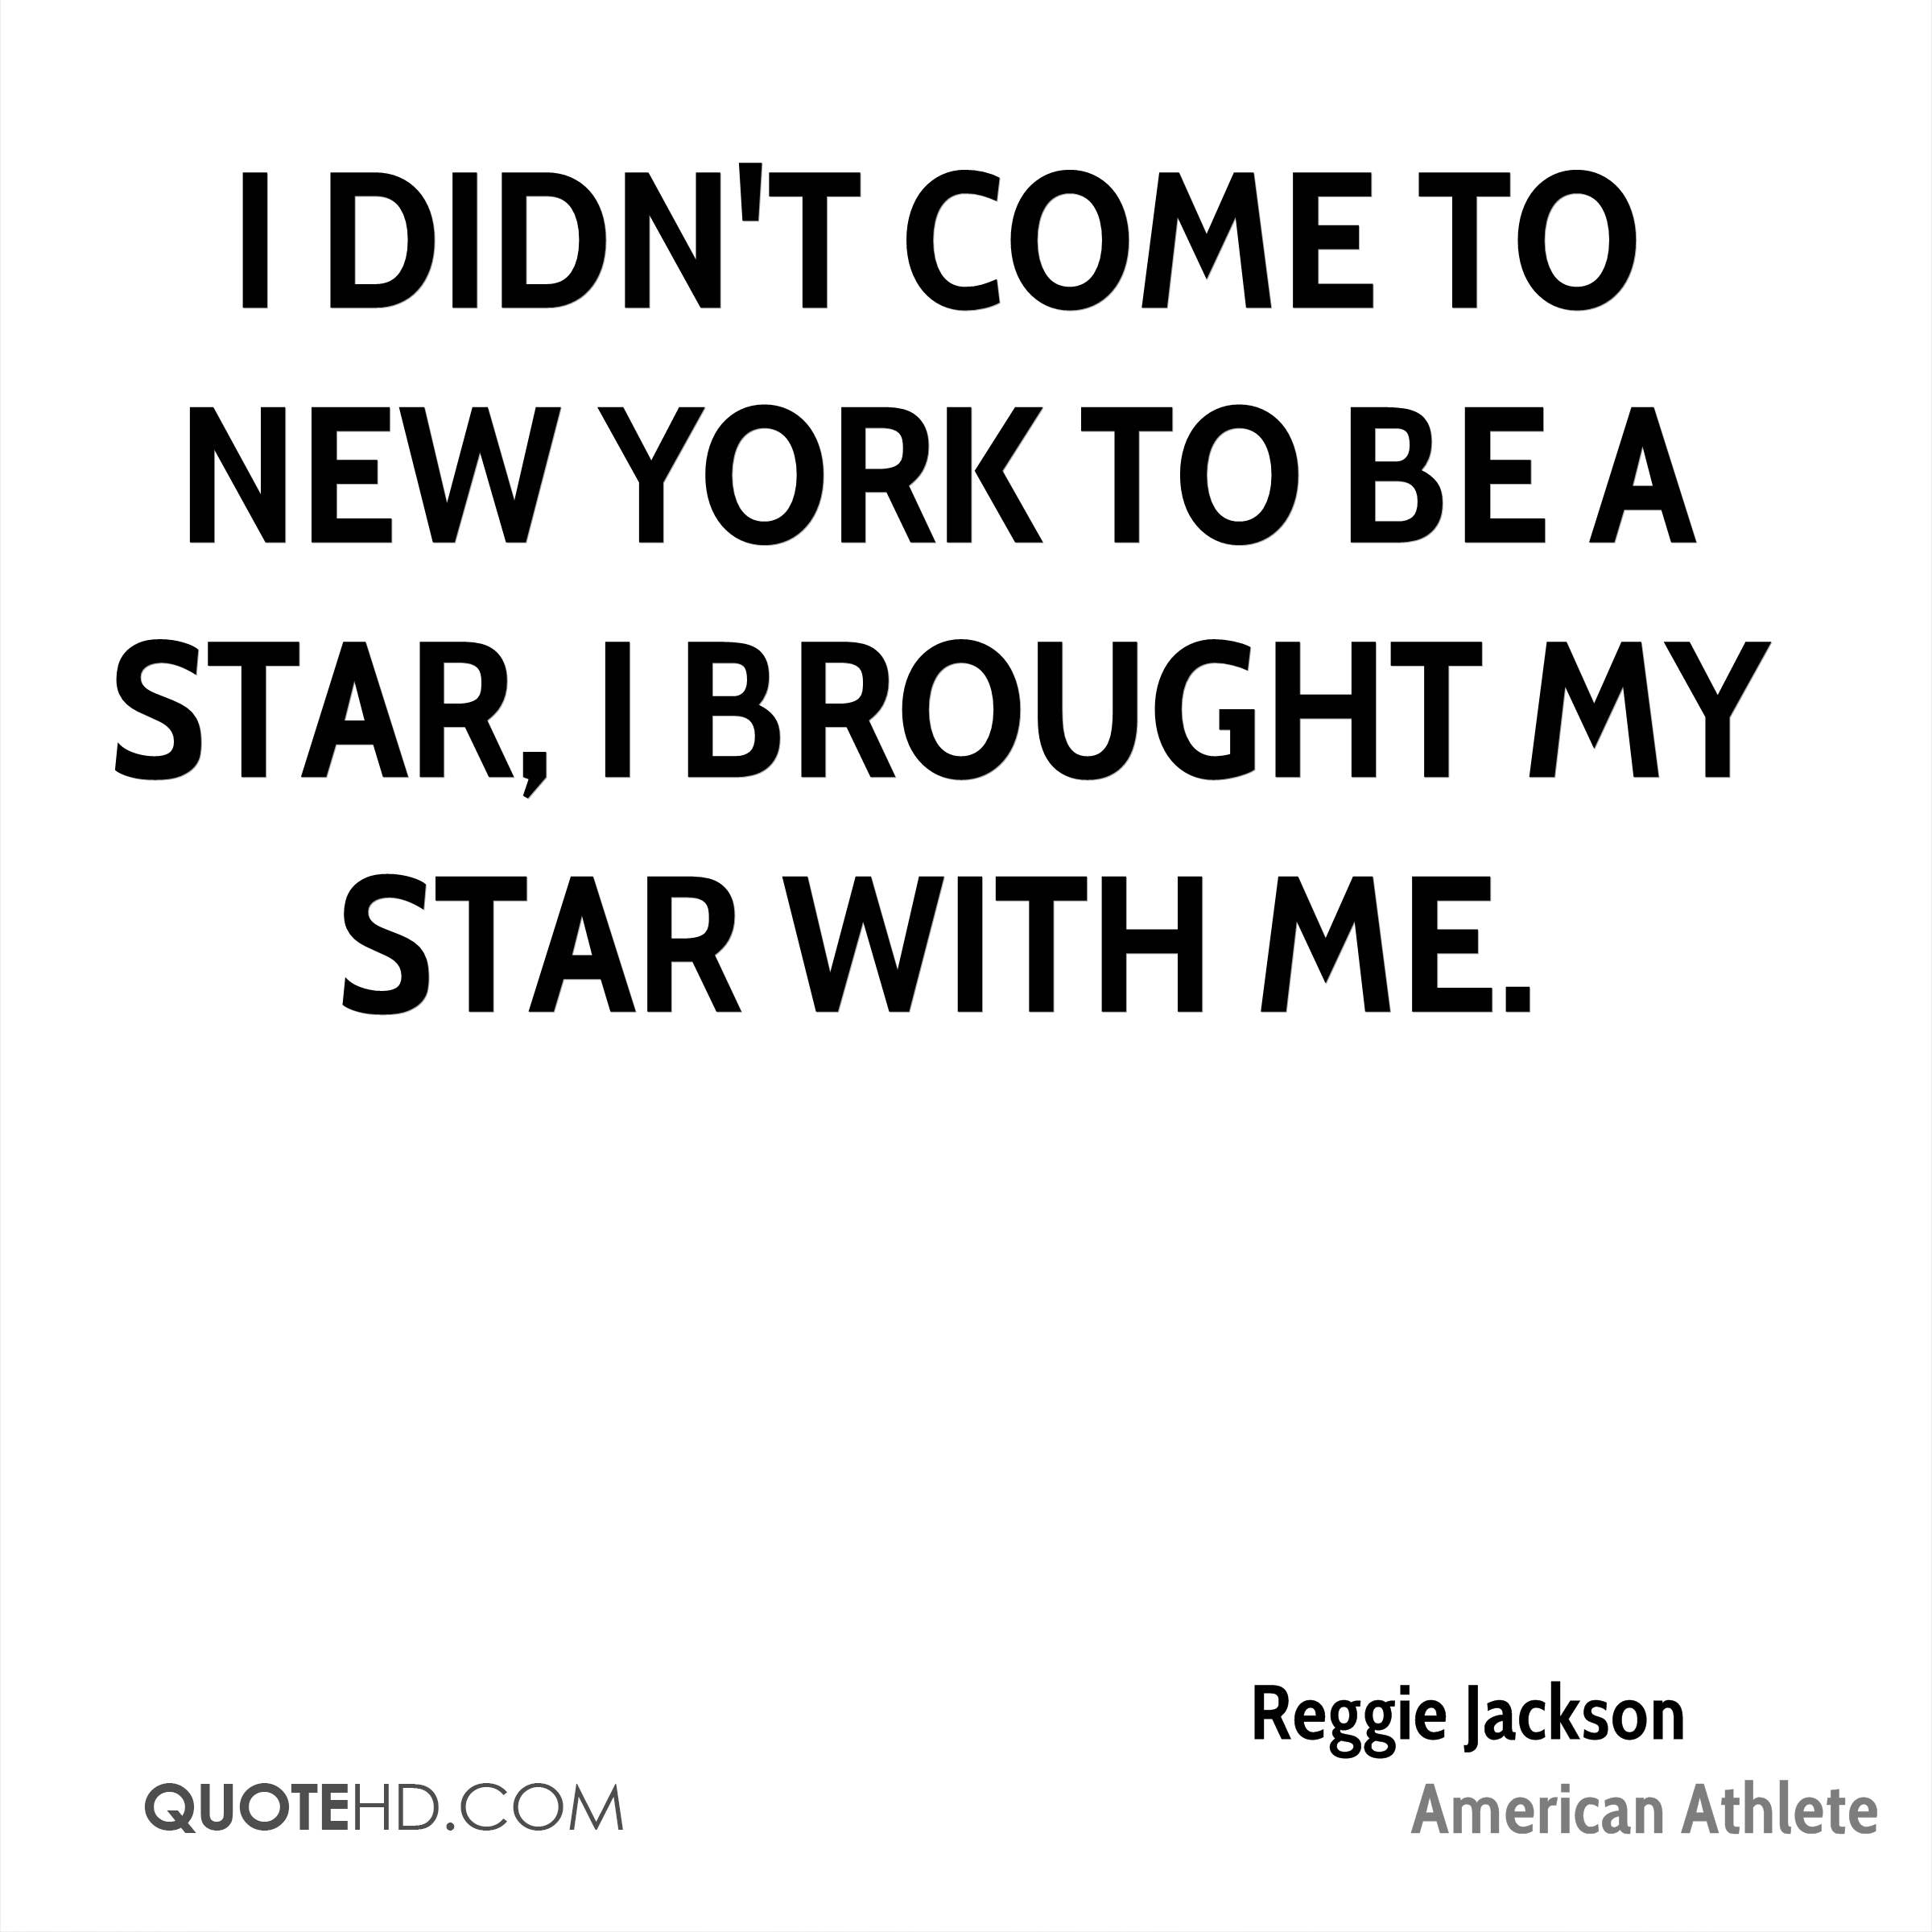 I didn't come to New York to be a star, I brought my star with me.